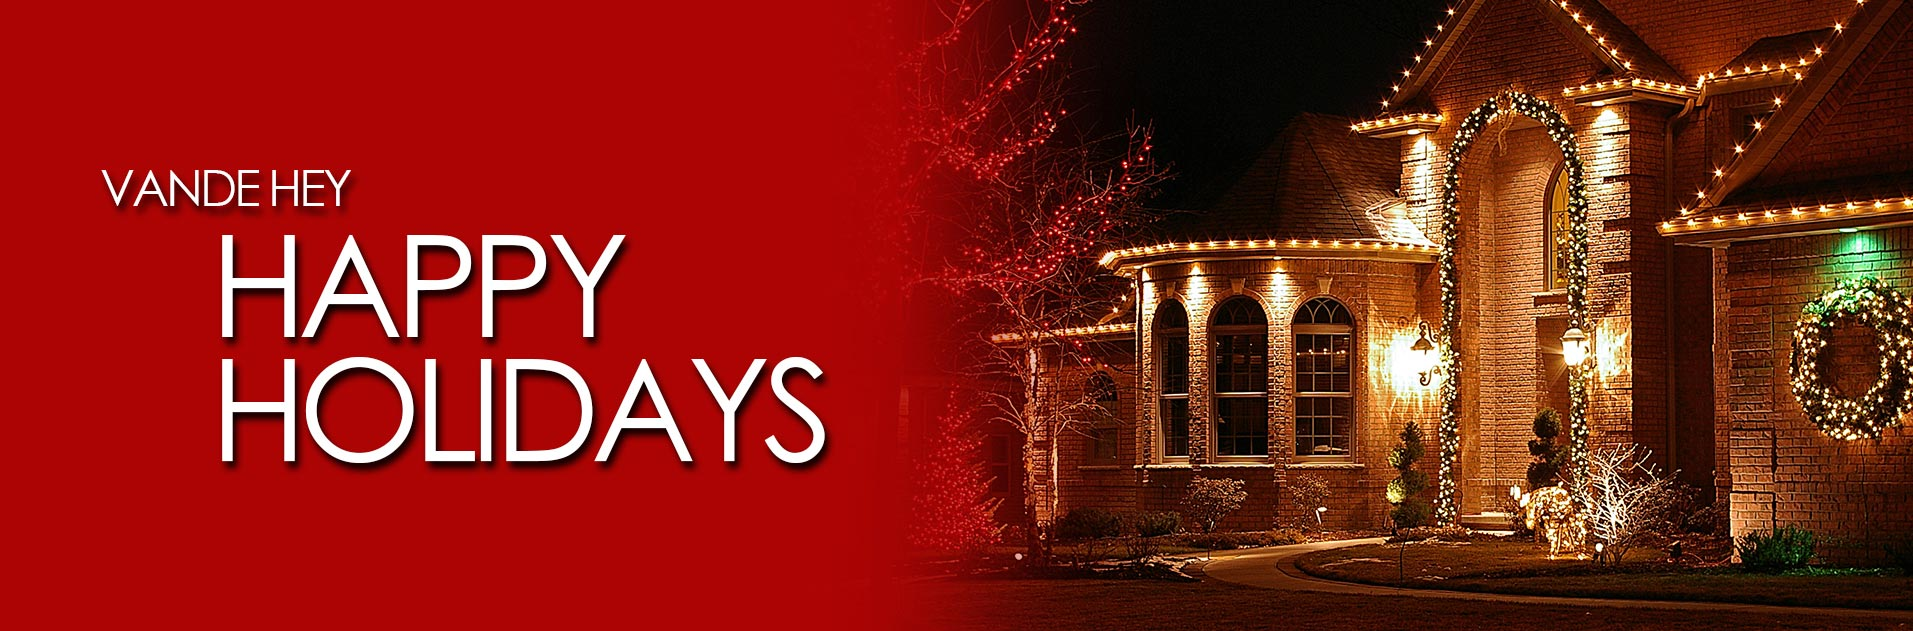 Holiday Lighting Services from Vande Hey Company in Appleton, Wisconsin